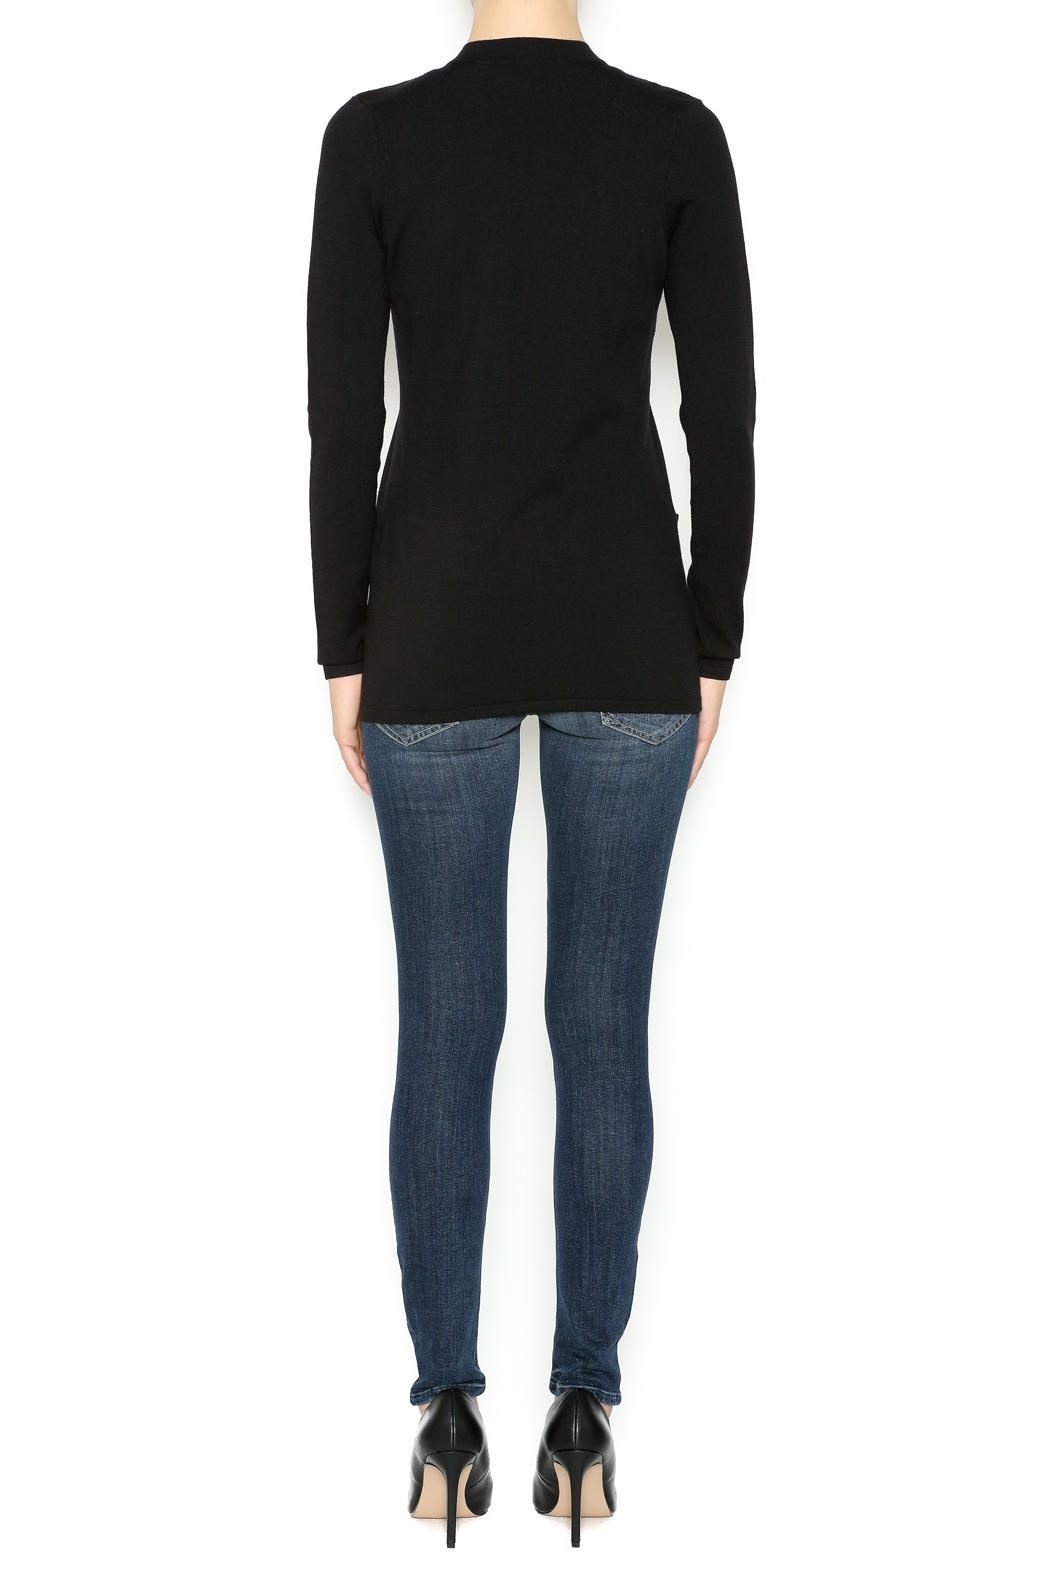 Cyrus Gold Trim Sweater - Side Cropped Image